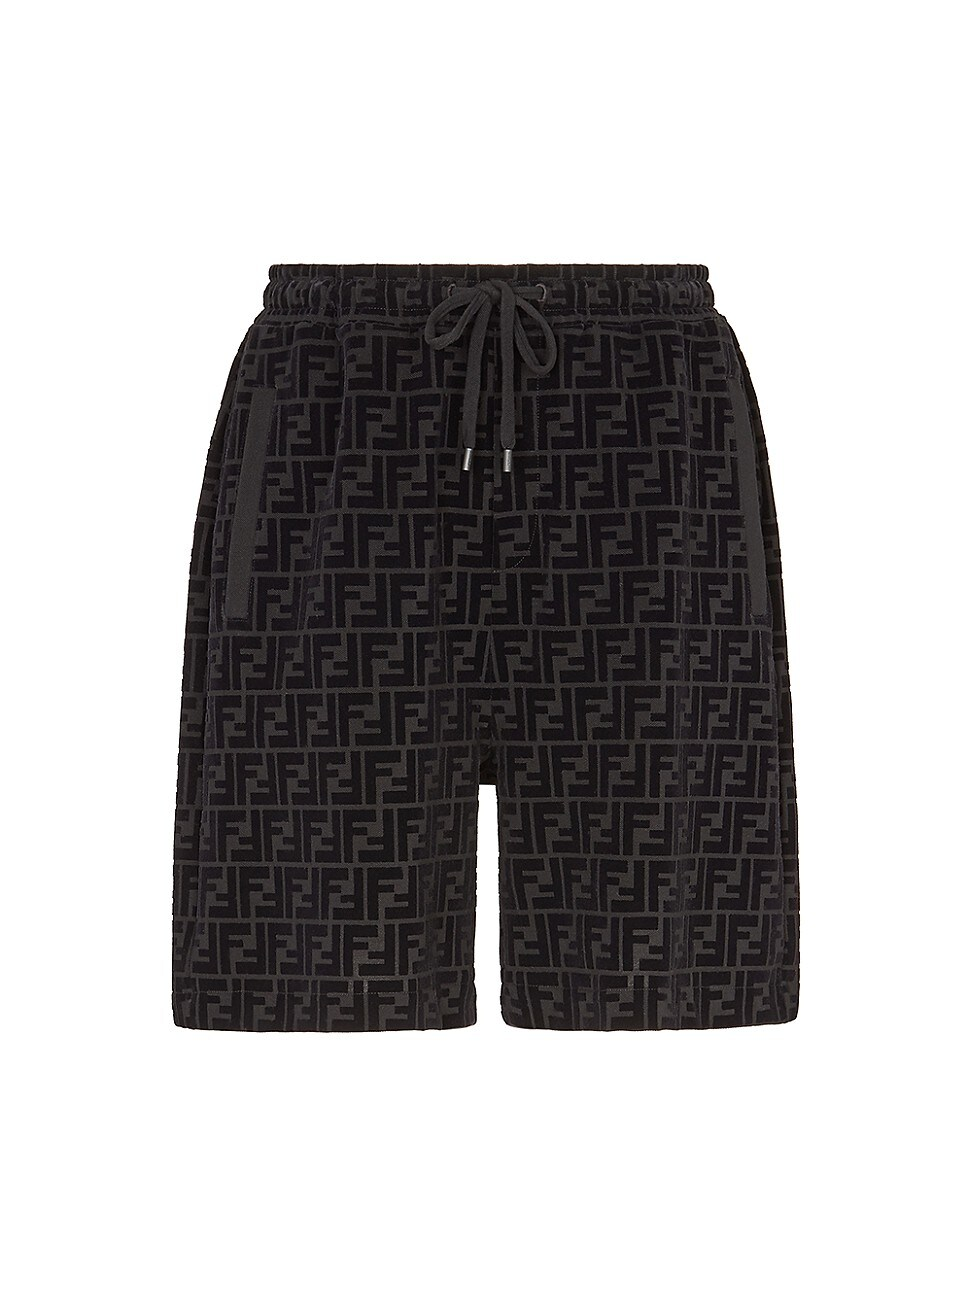 Fendi MEN'S FF LOGO BERMUDA SHORTS